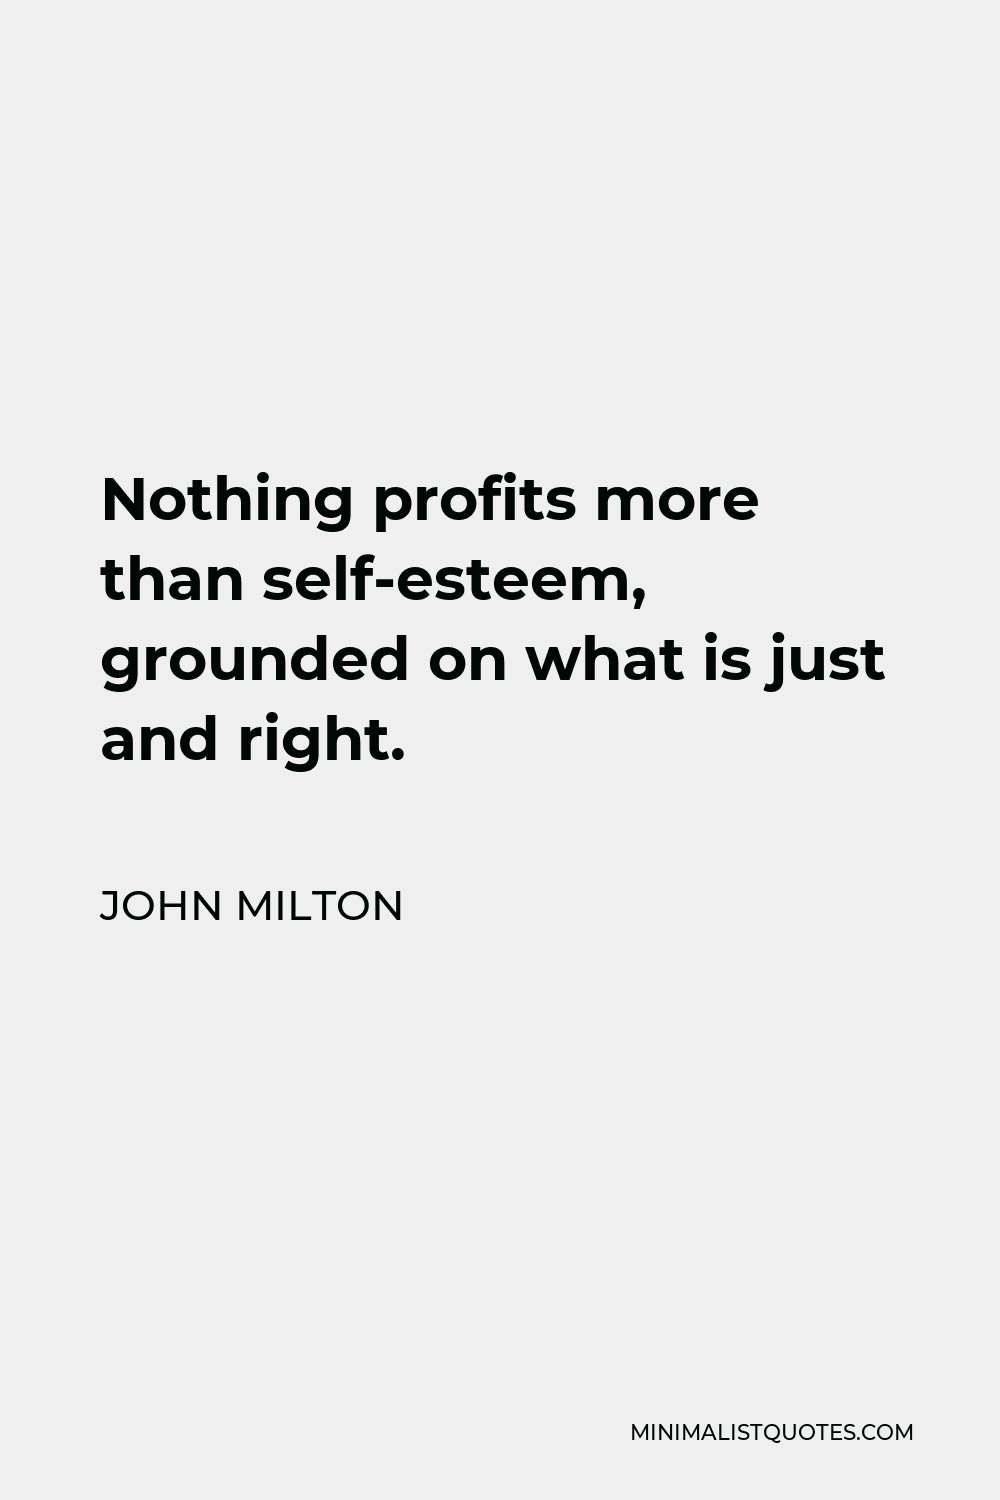 John Milton Quote - Nothing profits more than self-esteem, grounded on what is just and right.